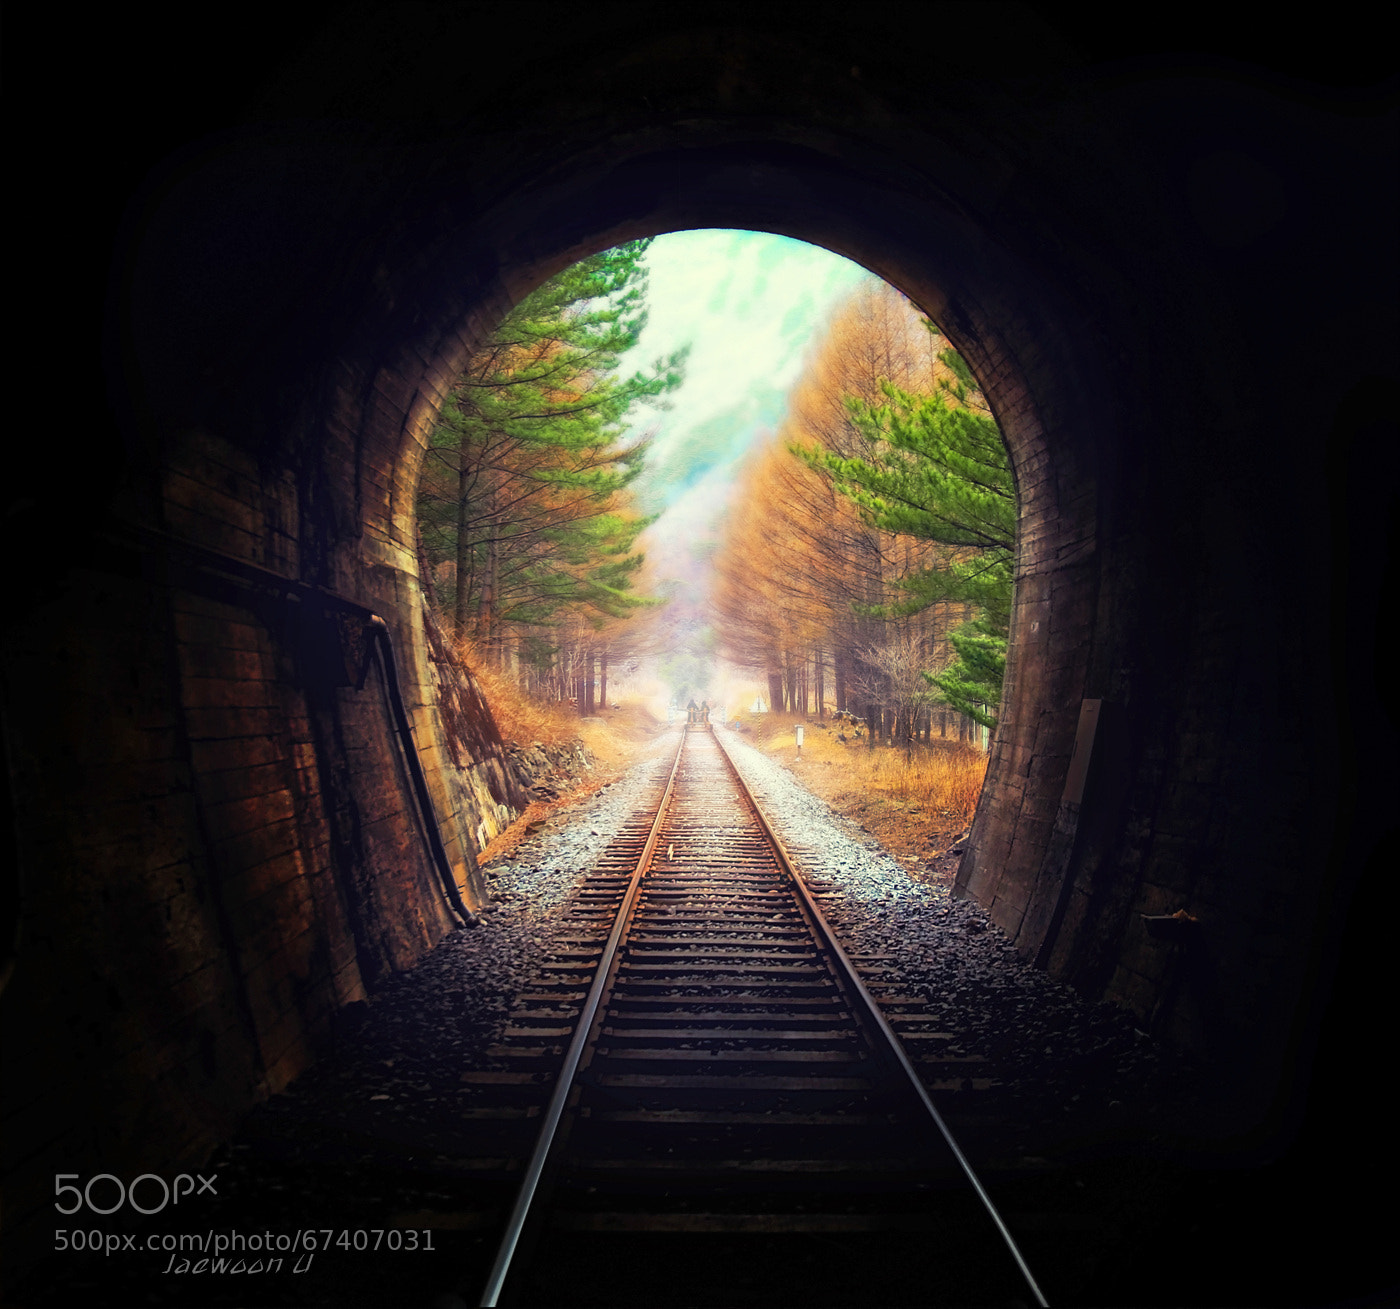 Photograph Into the light by Jaewoon U on 500px